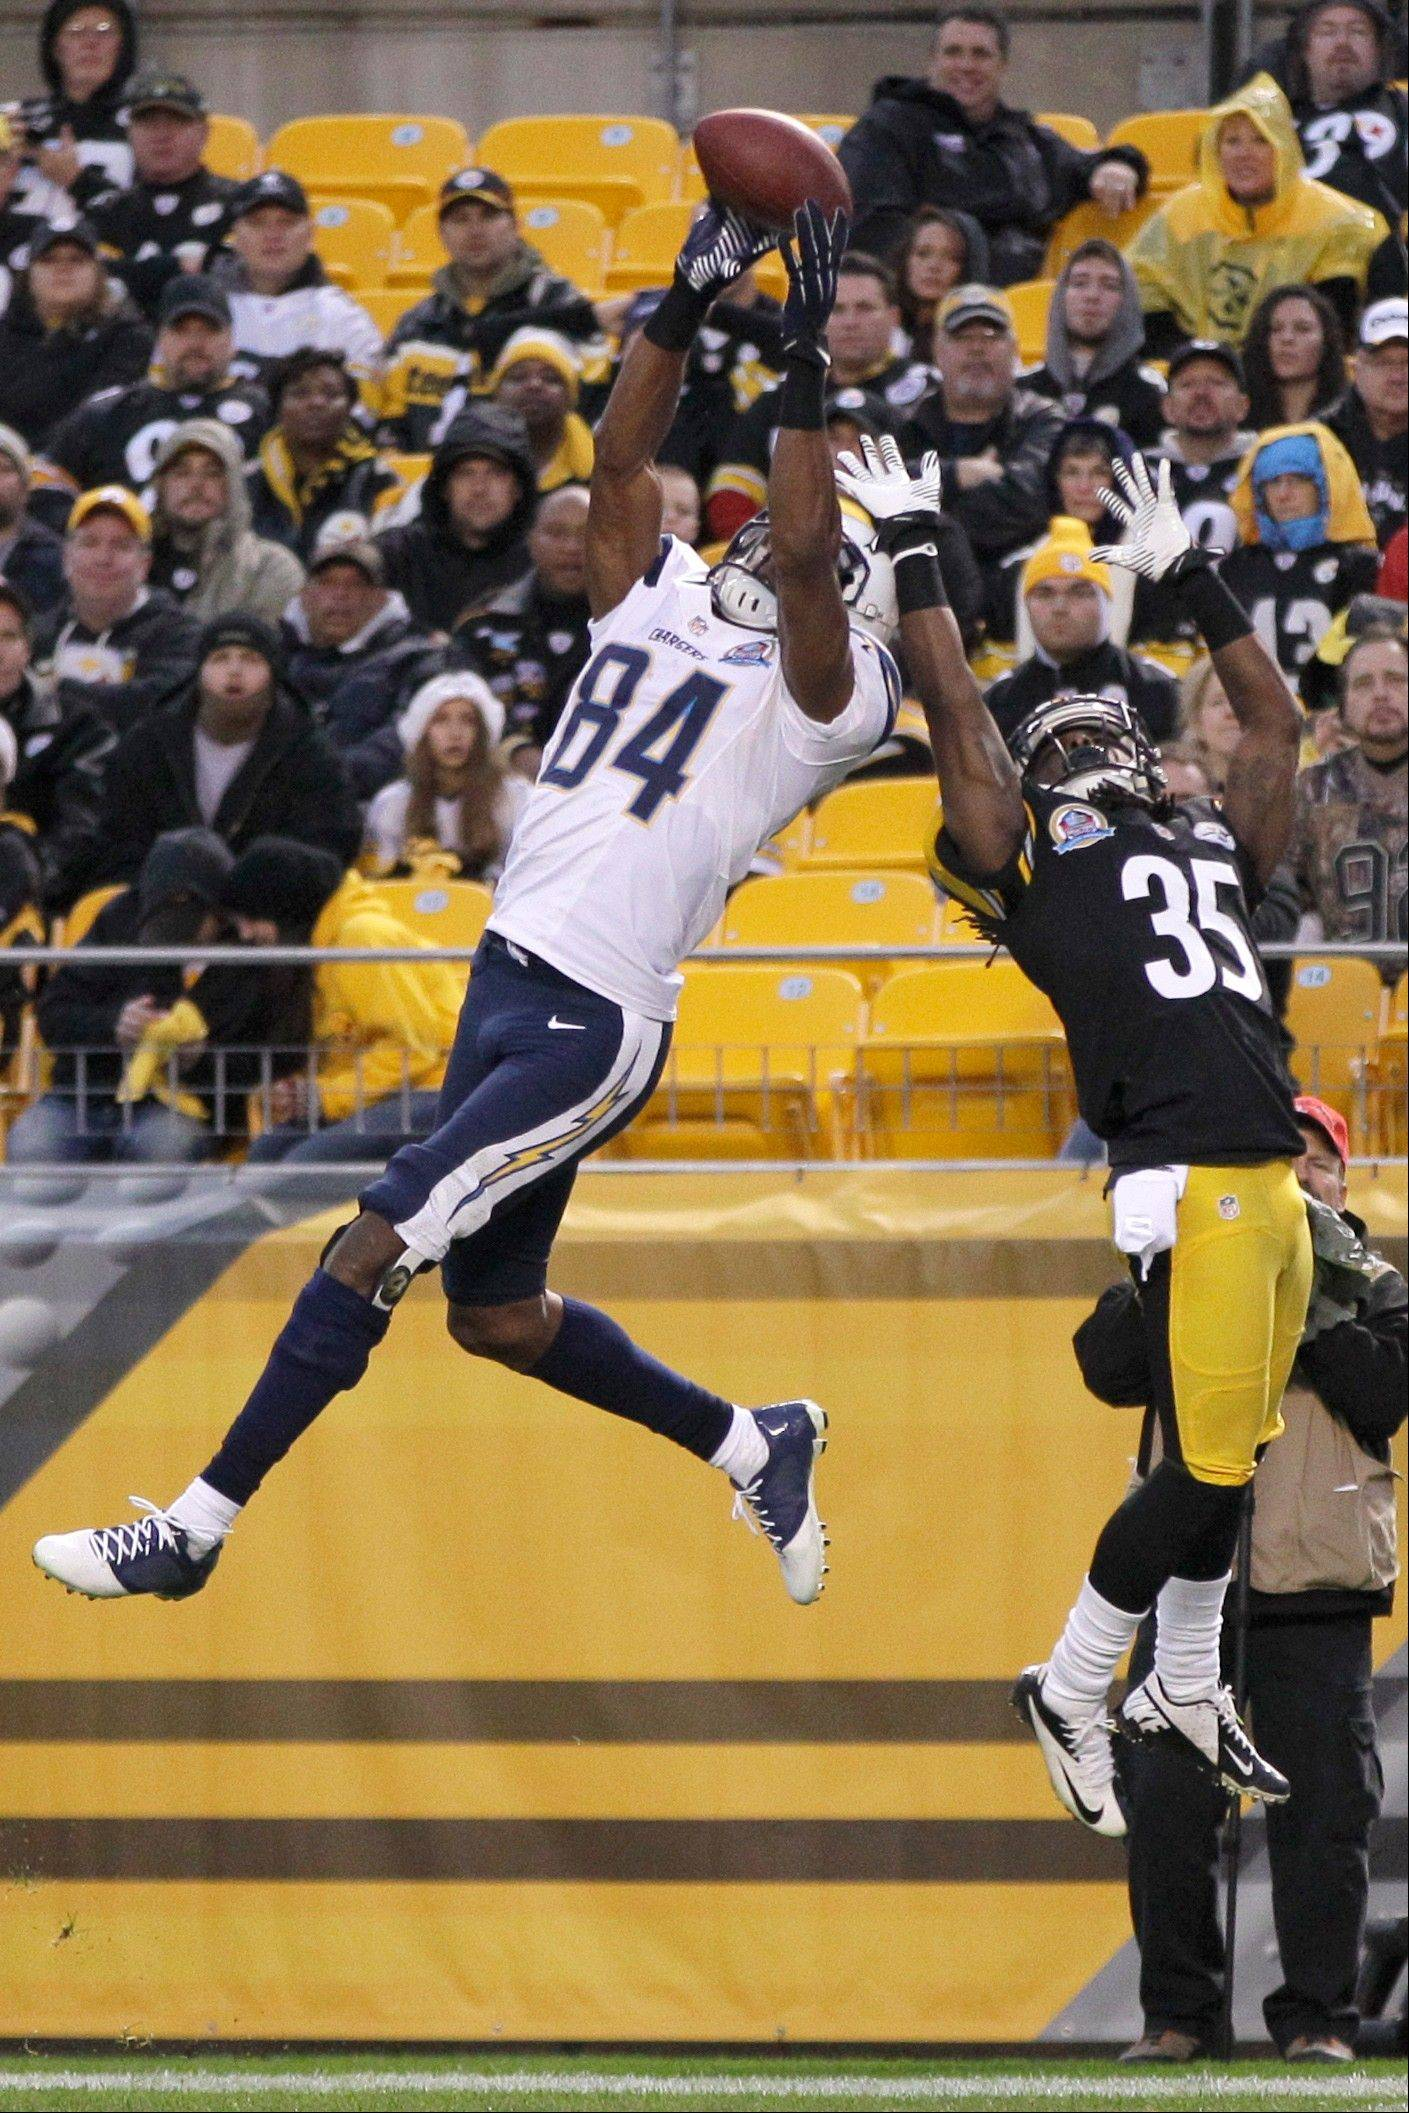 San Diego Chargers wide receiver Danario Alexander (84) goes up to make a touchdown catch in front of Pittsburgh Steelers defensive back Josh Victorian in the fourth quarter of an NFL football game in Pittsburgh, Sunday, Dec. 9, 2012.